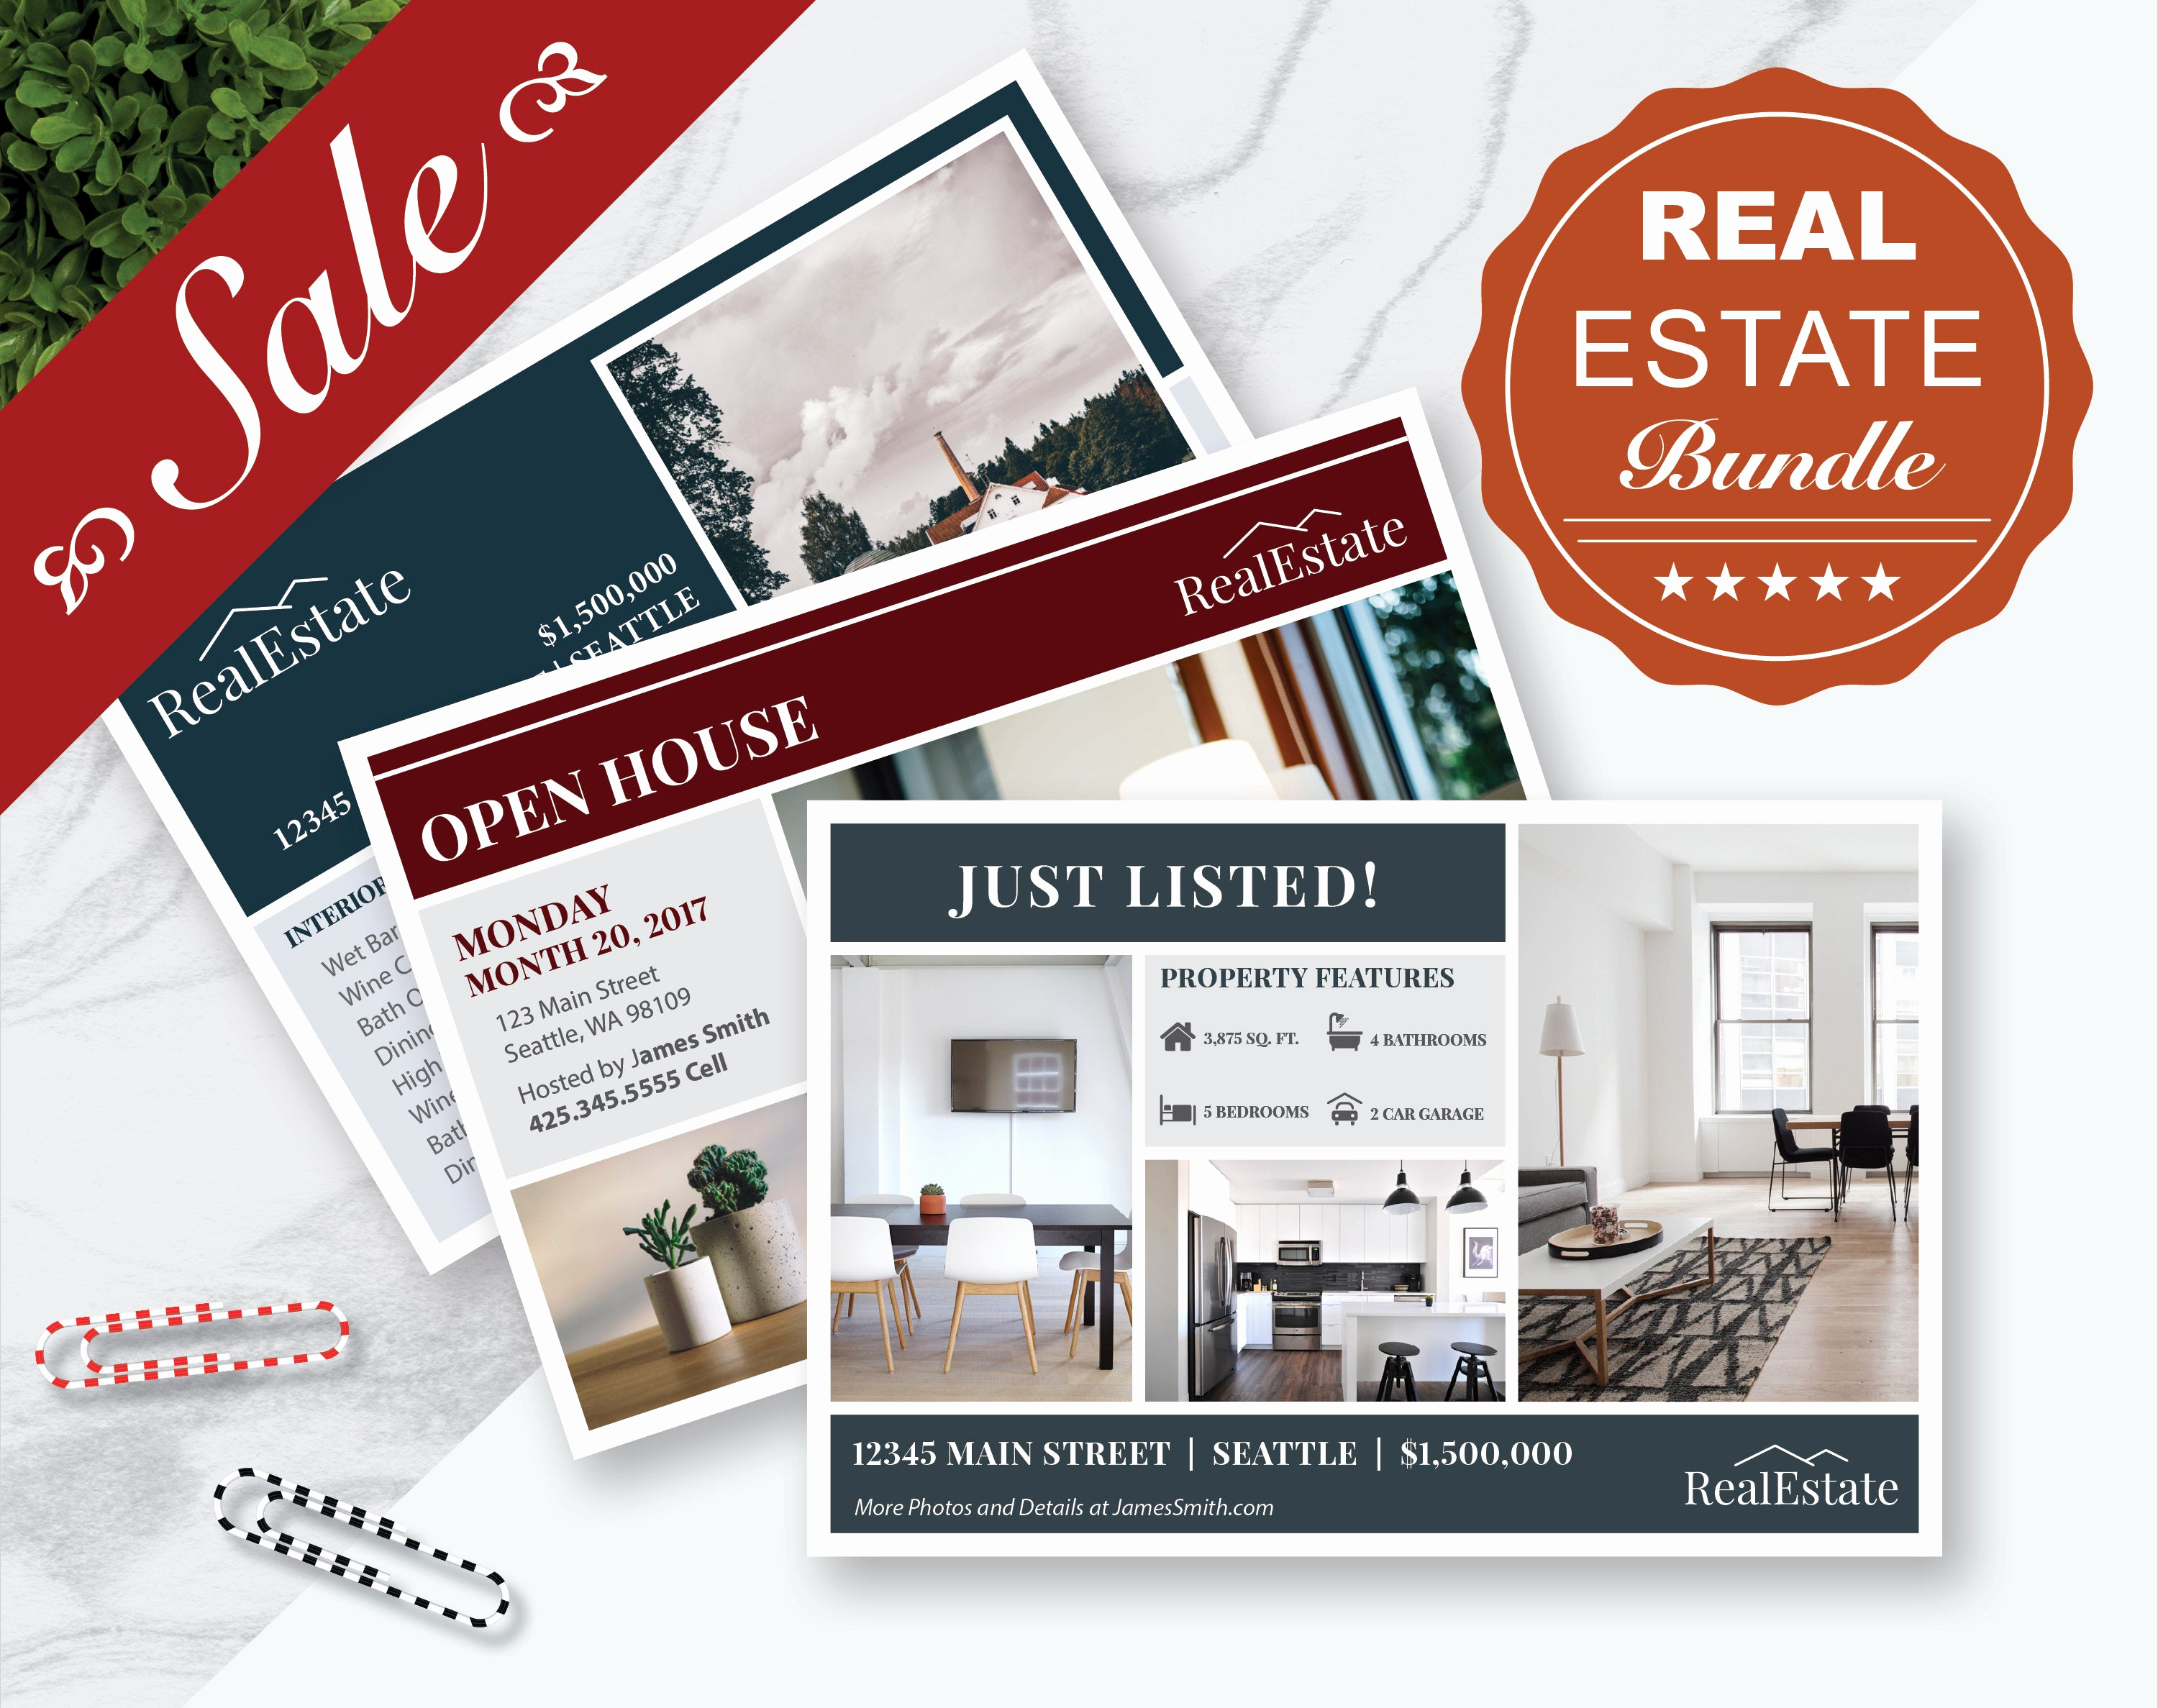 Real Estate Postcard Templates Elegant Real Estate Marketing Postcards Bundle 3 Postcard Templates